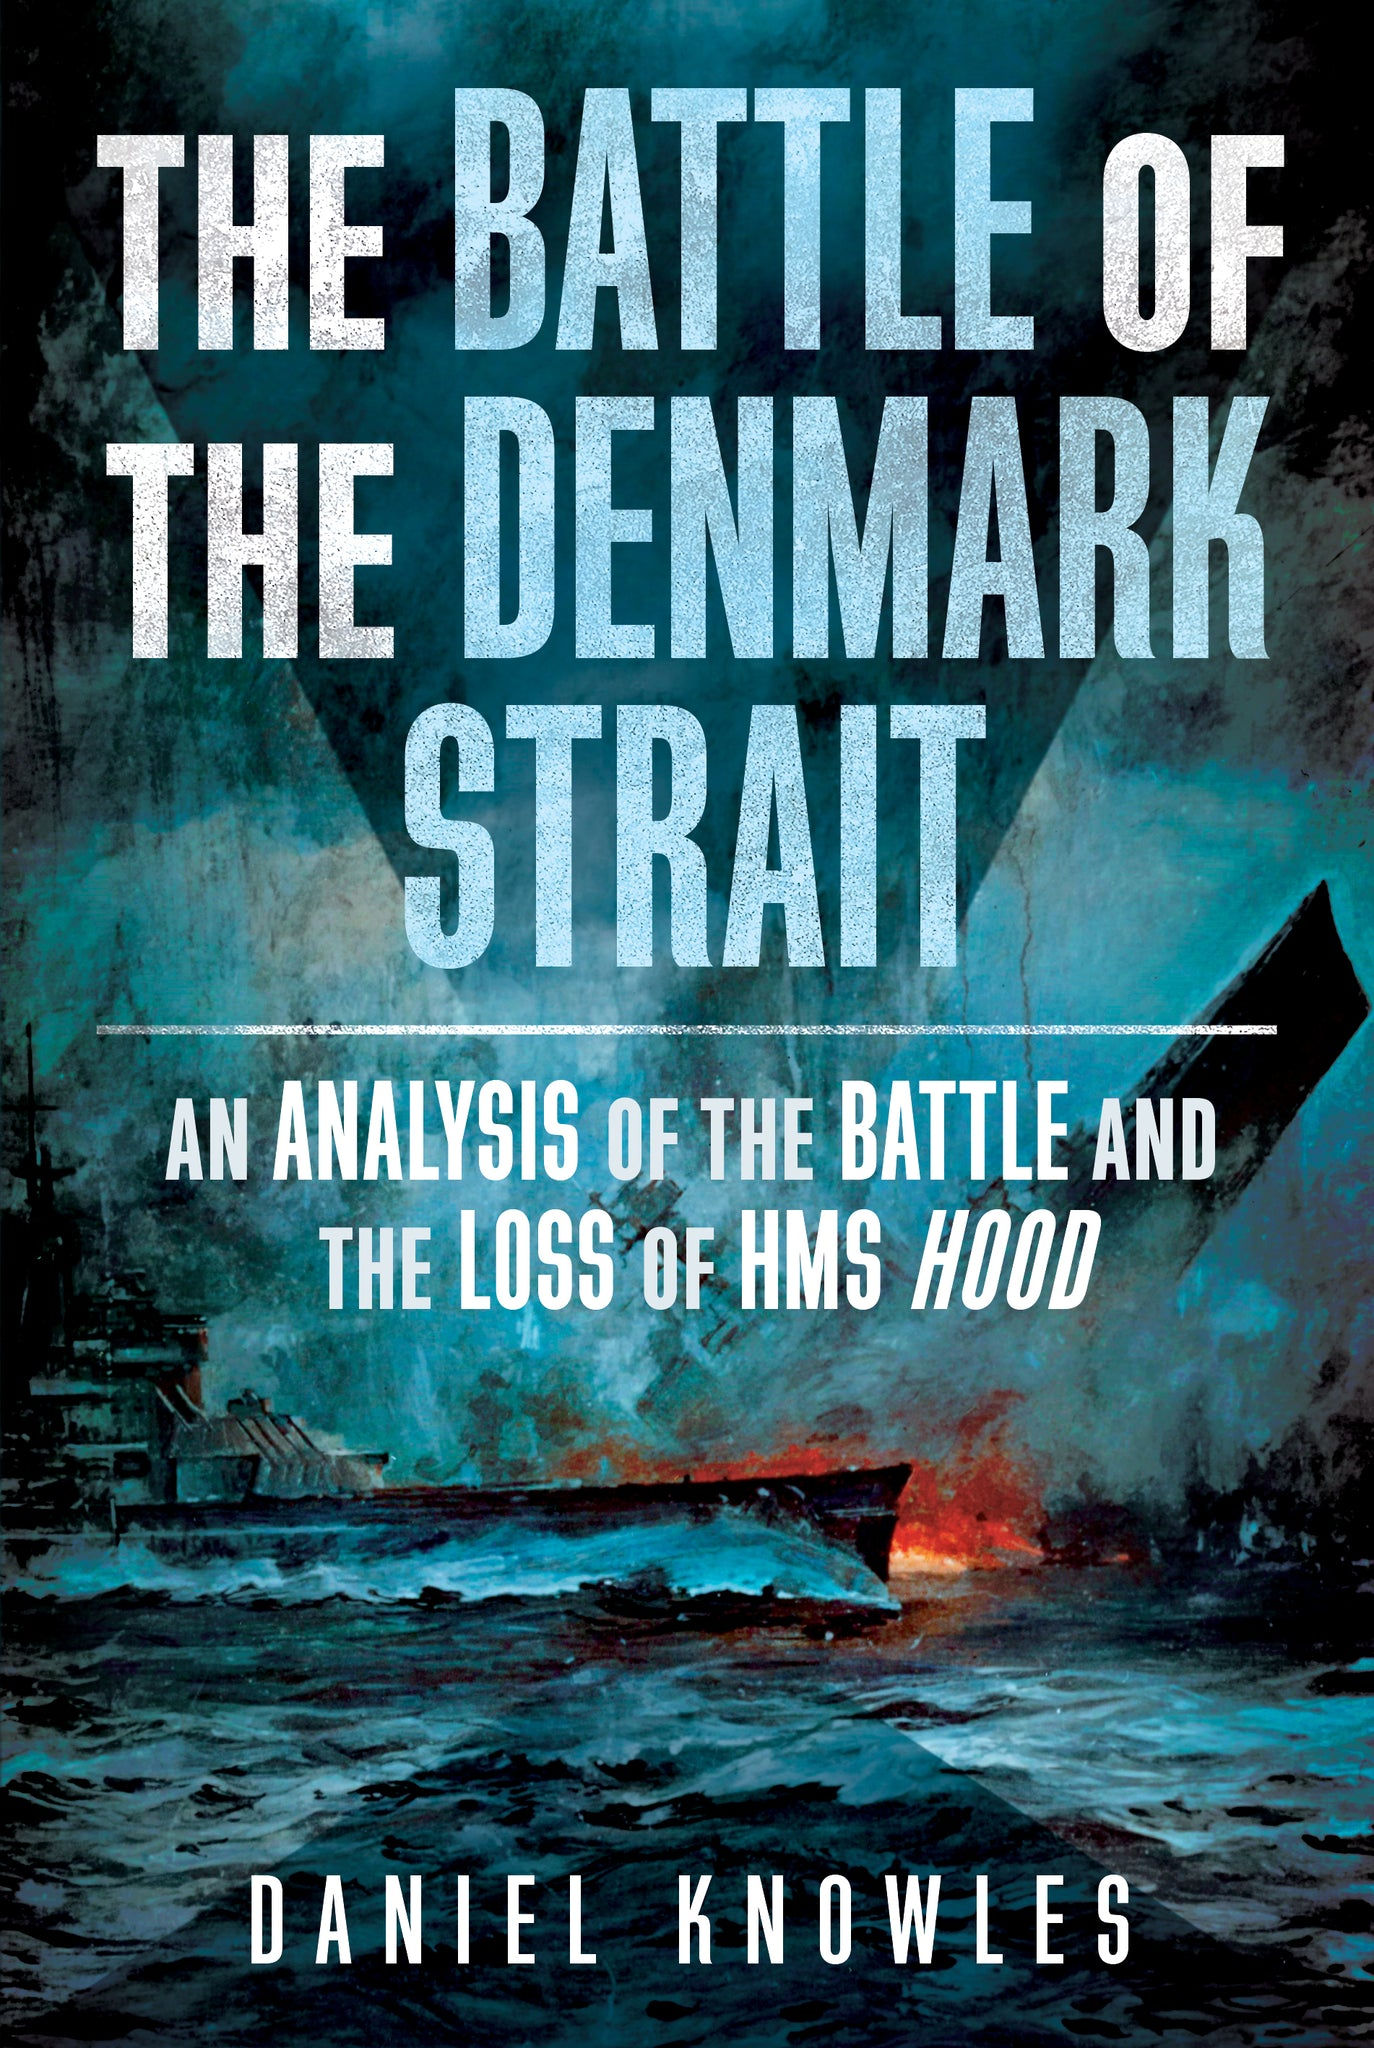 The Battle of the Denmark Strait: An Analysis of the Battle and the Loss of HMS Hood